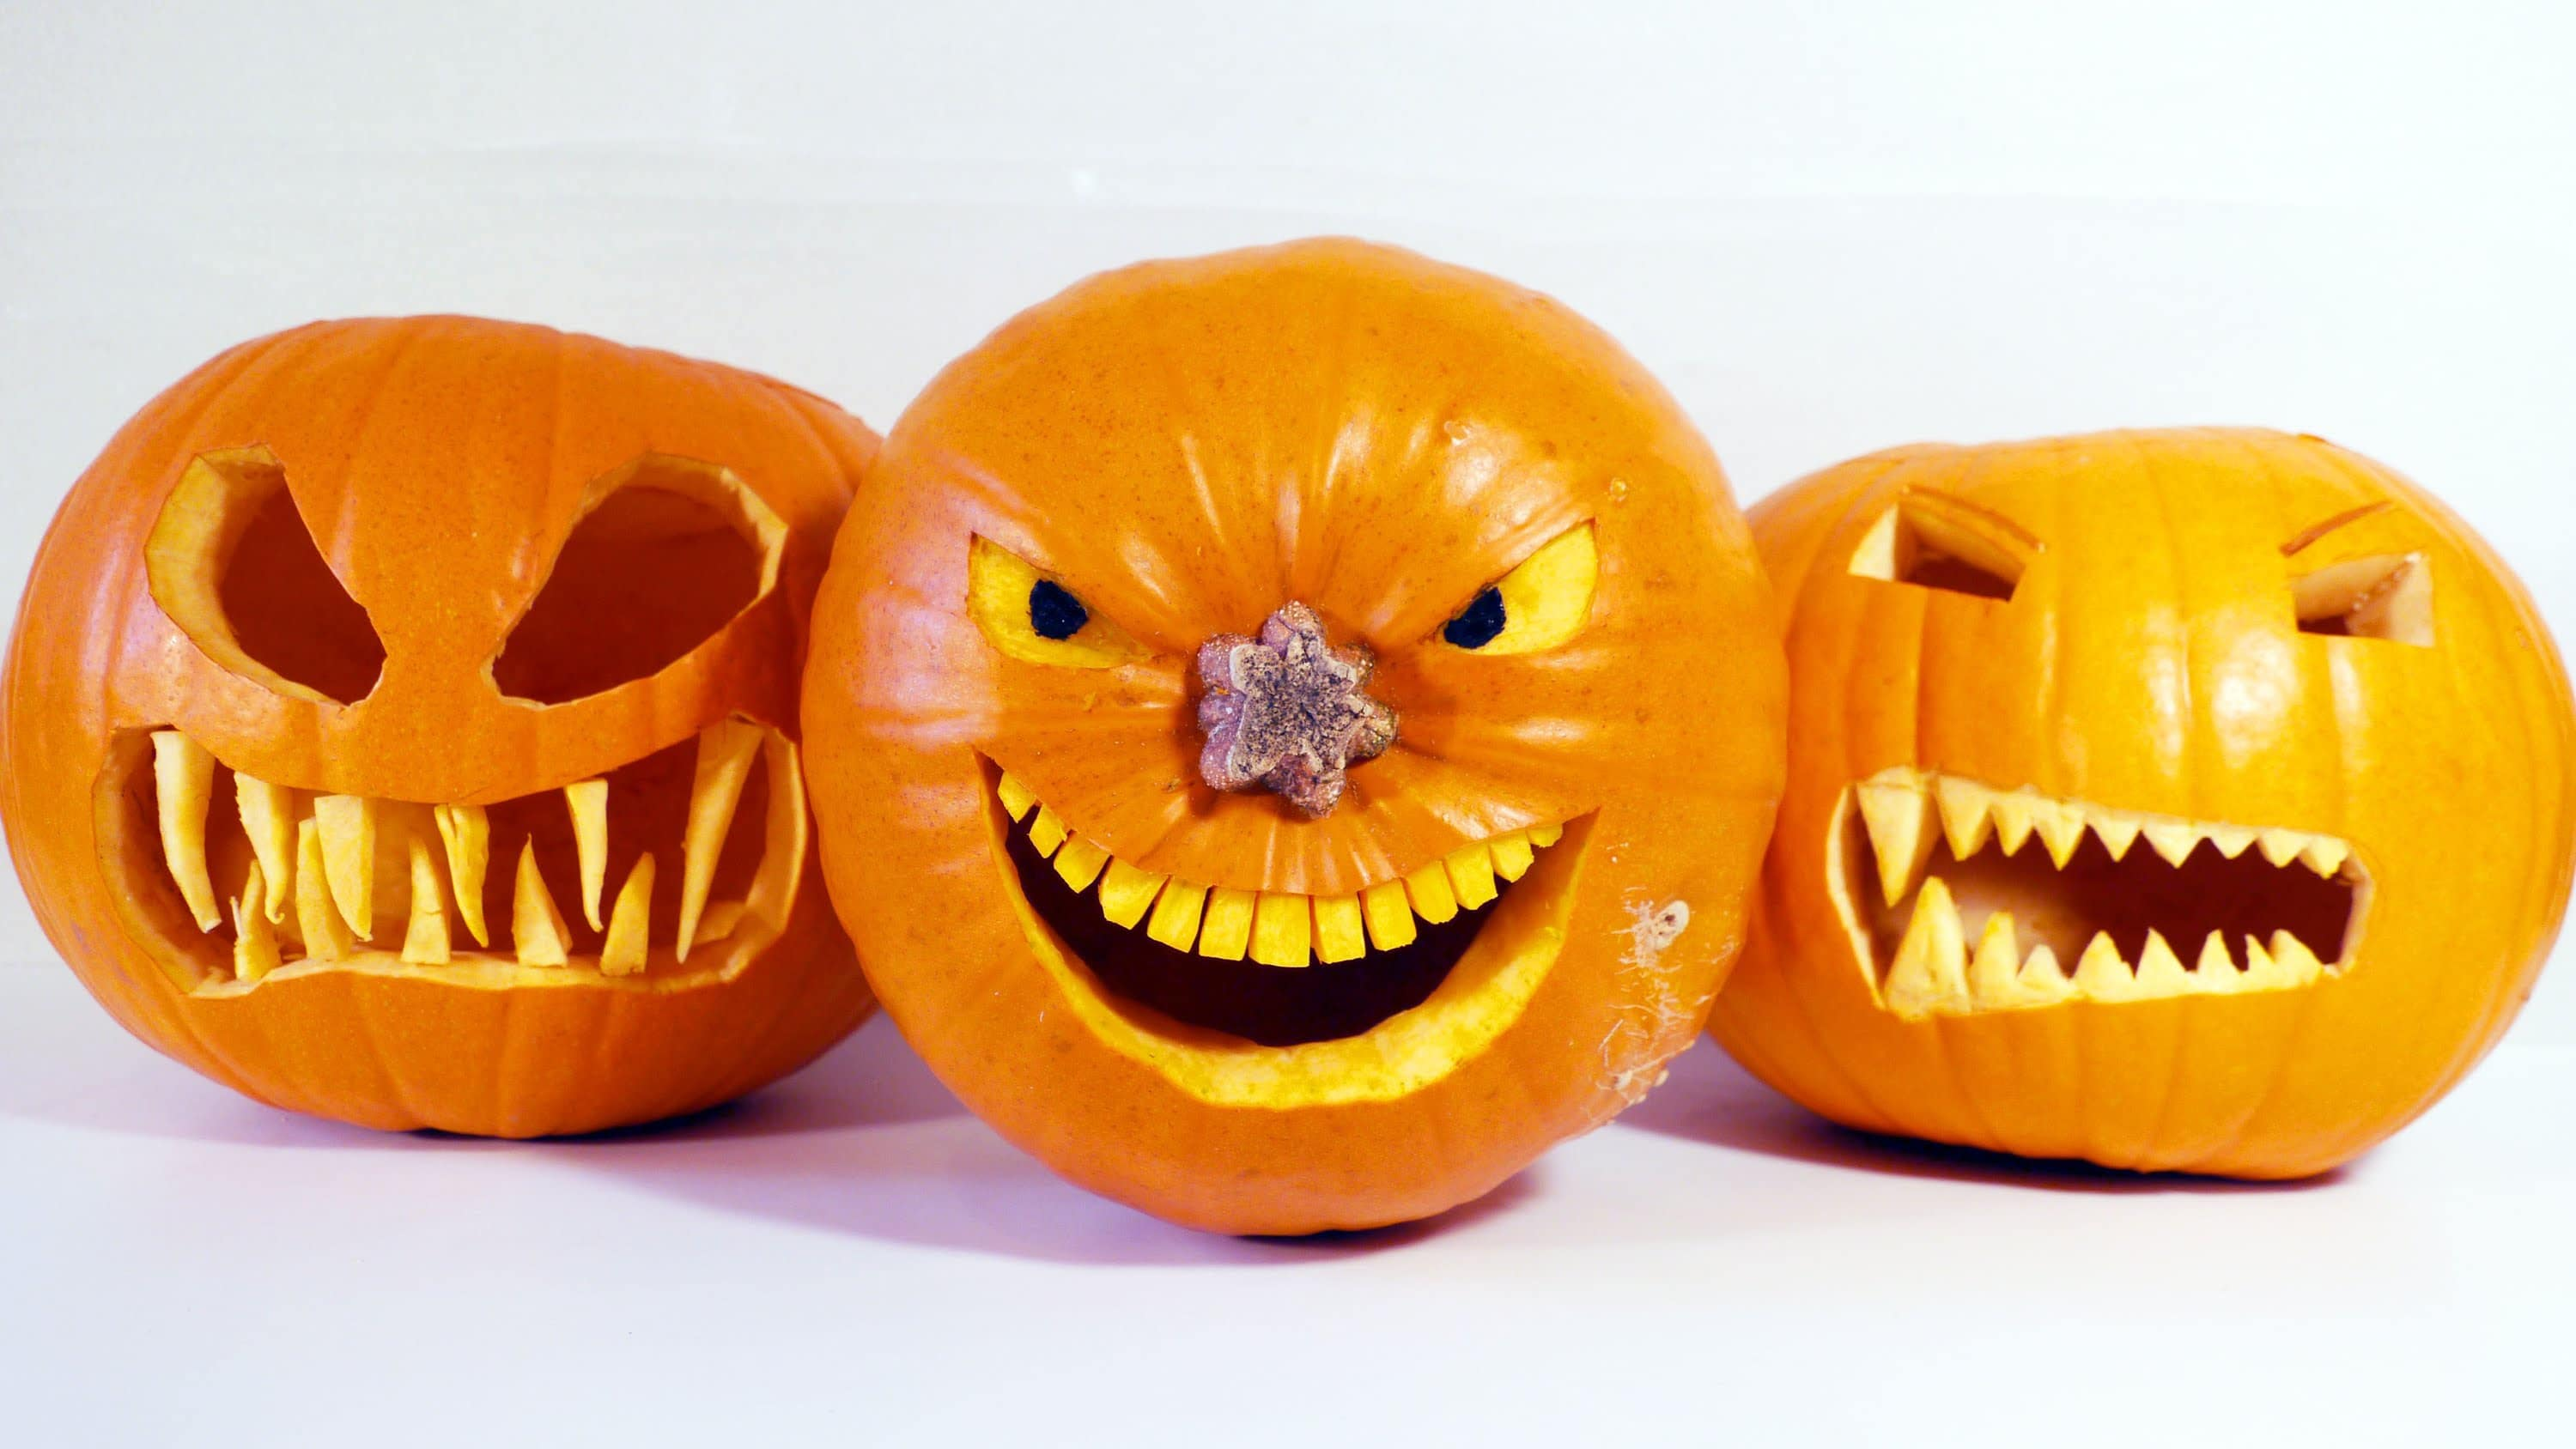 carving jack-o-lanterns with scary teeth